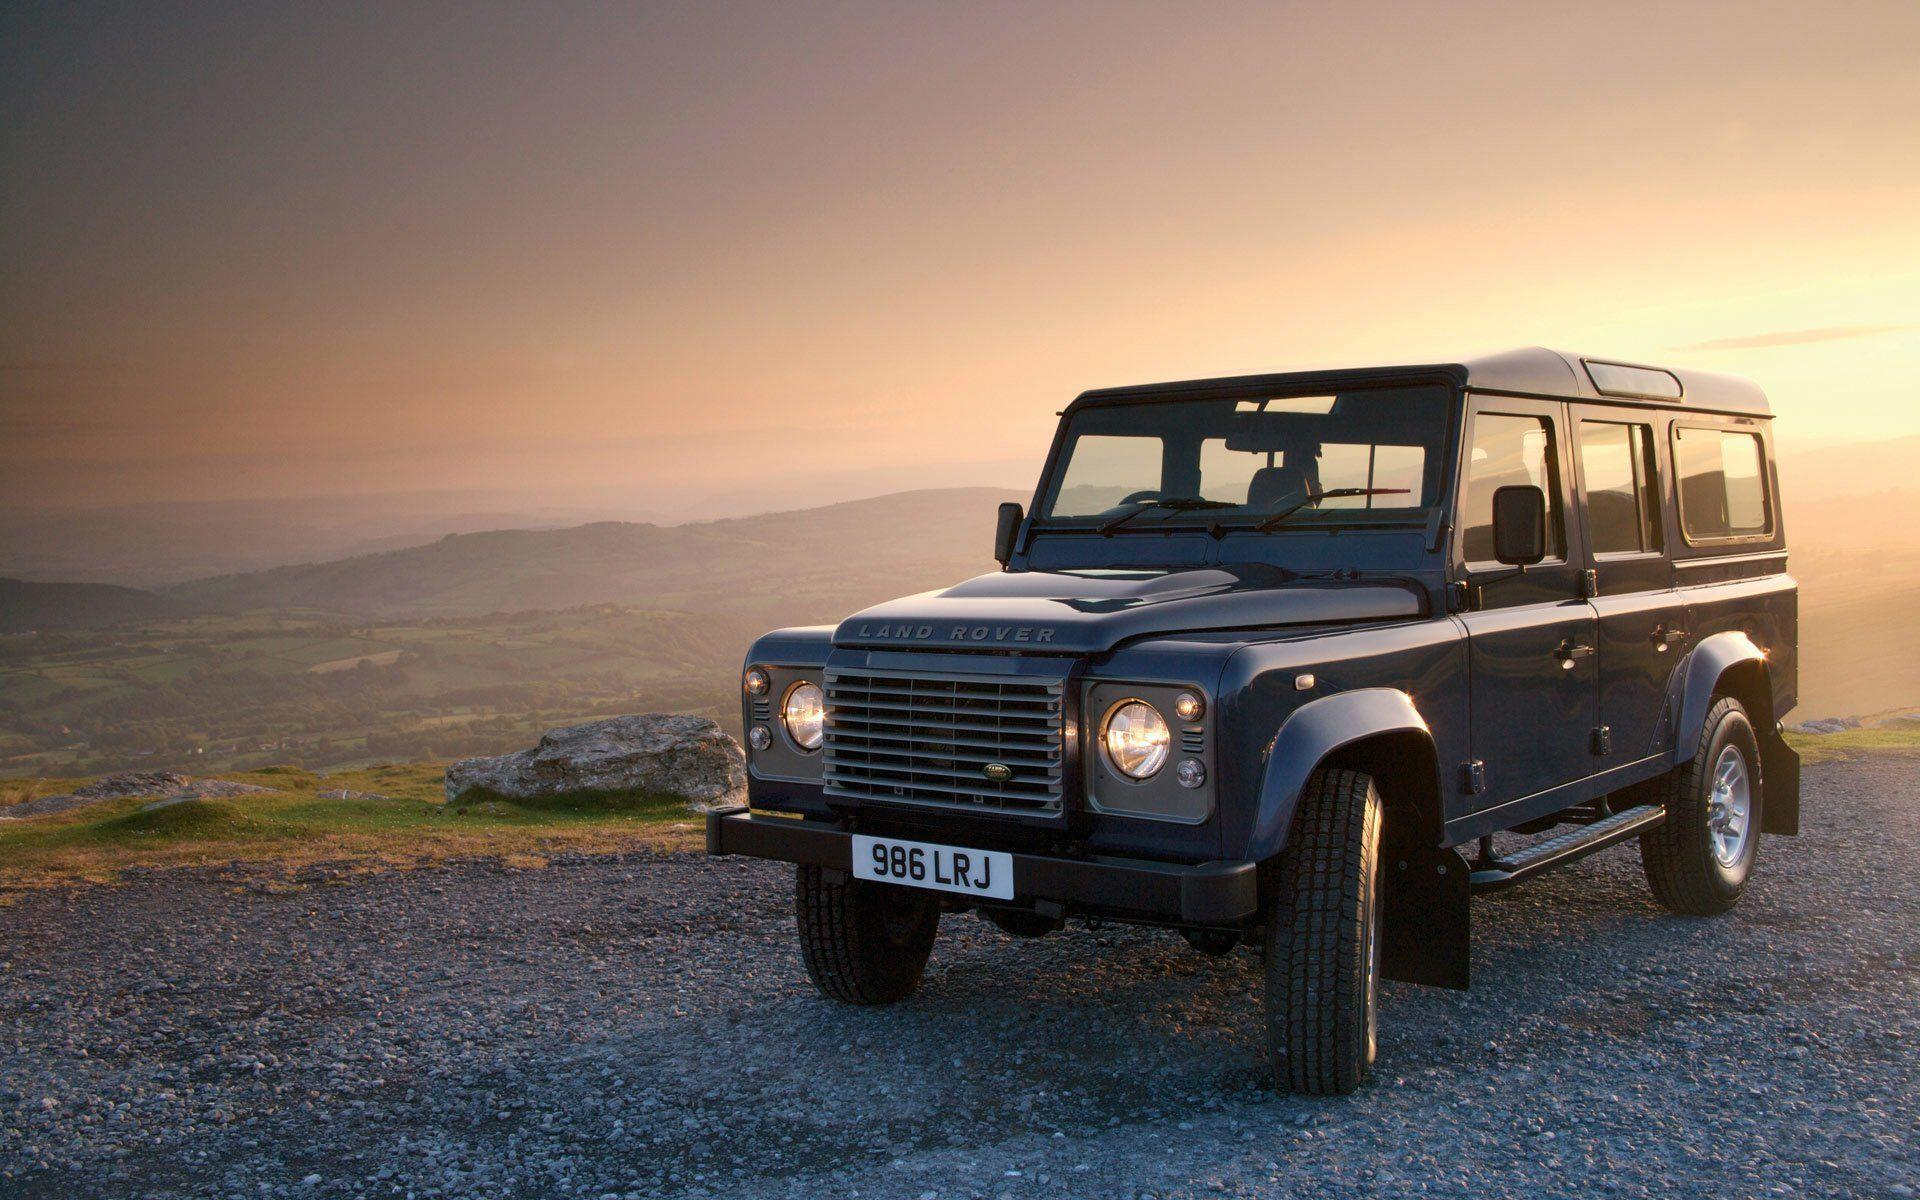 36 Land Rover Defender HD Wallpapers